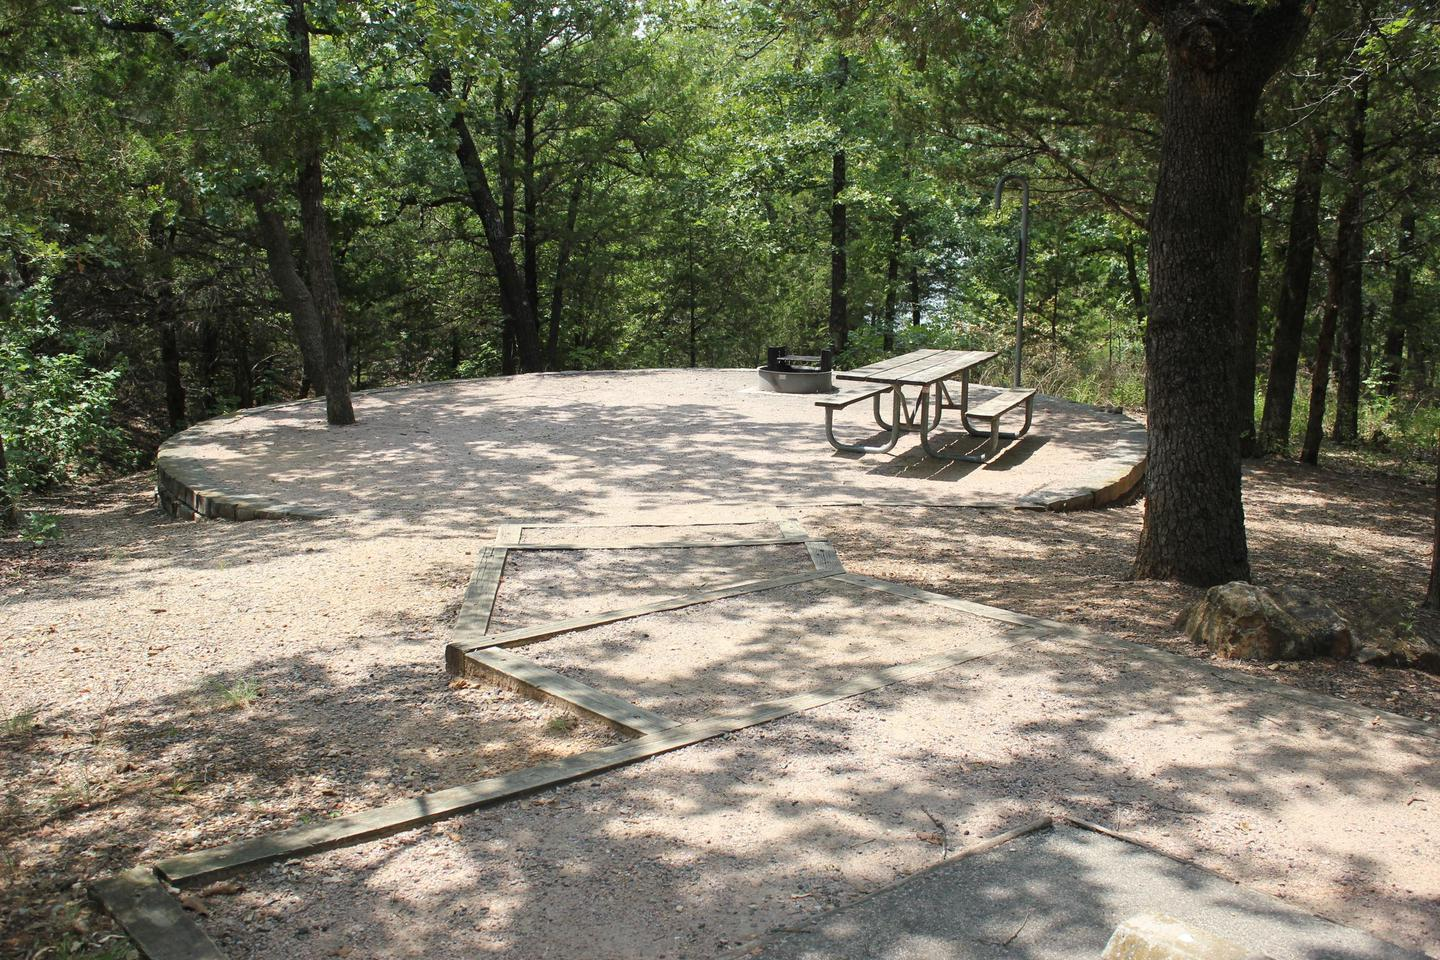 Buckhorn Site 93A walk-in site at Buckhorn Campground, with no parking or hook-ups for an RV.